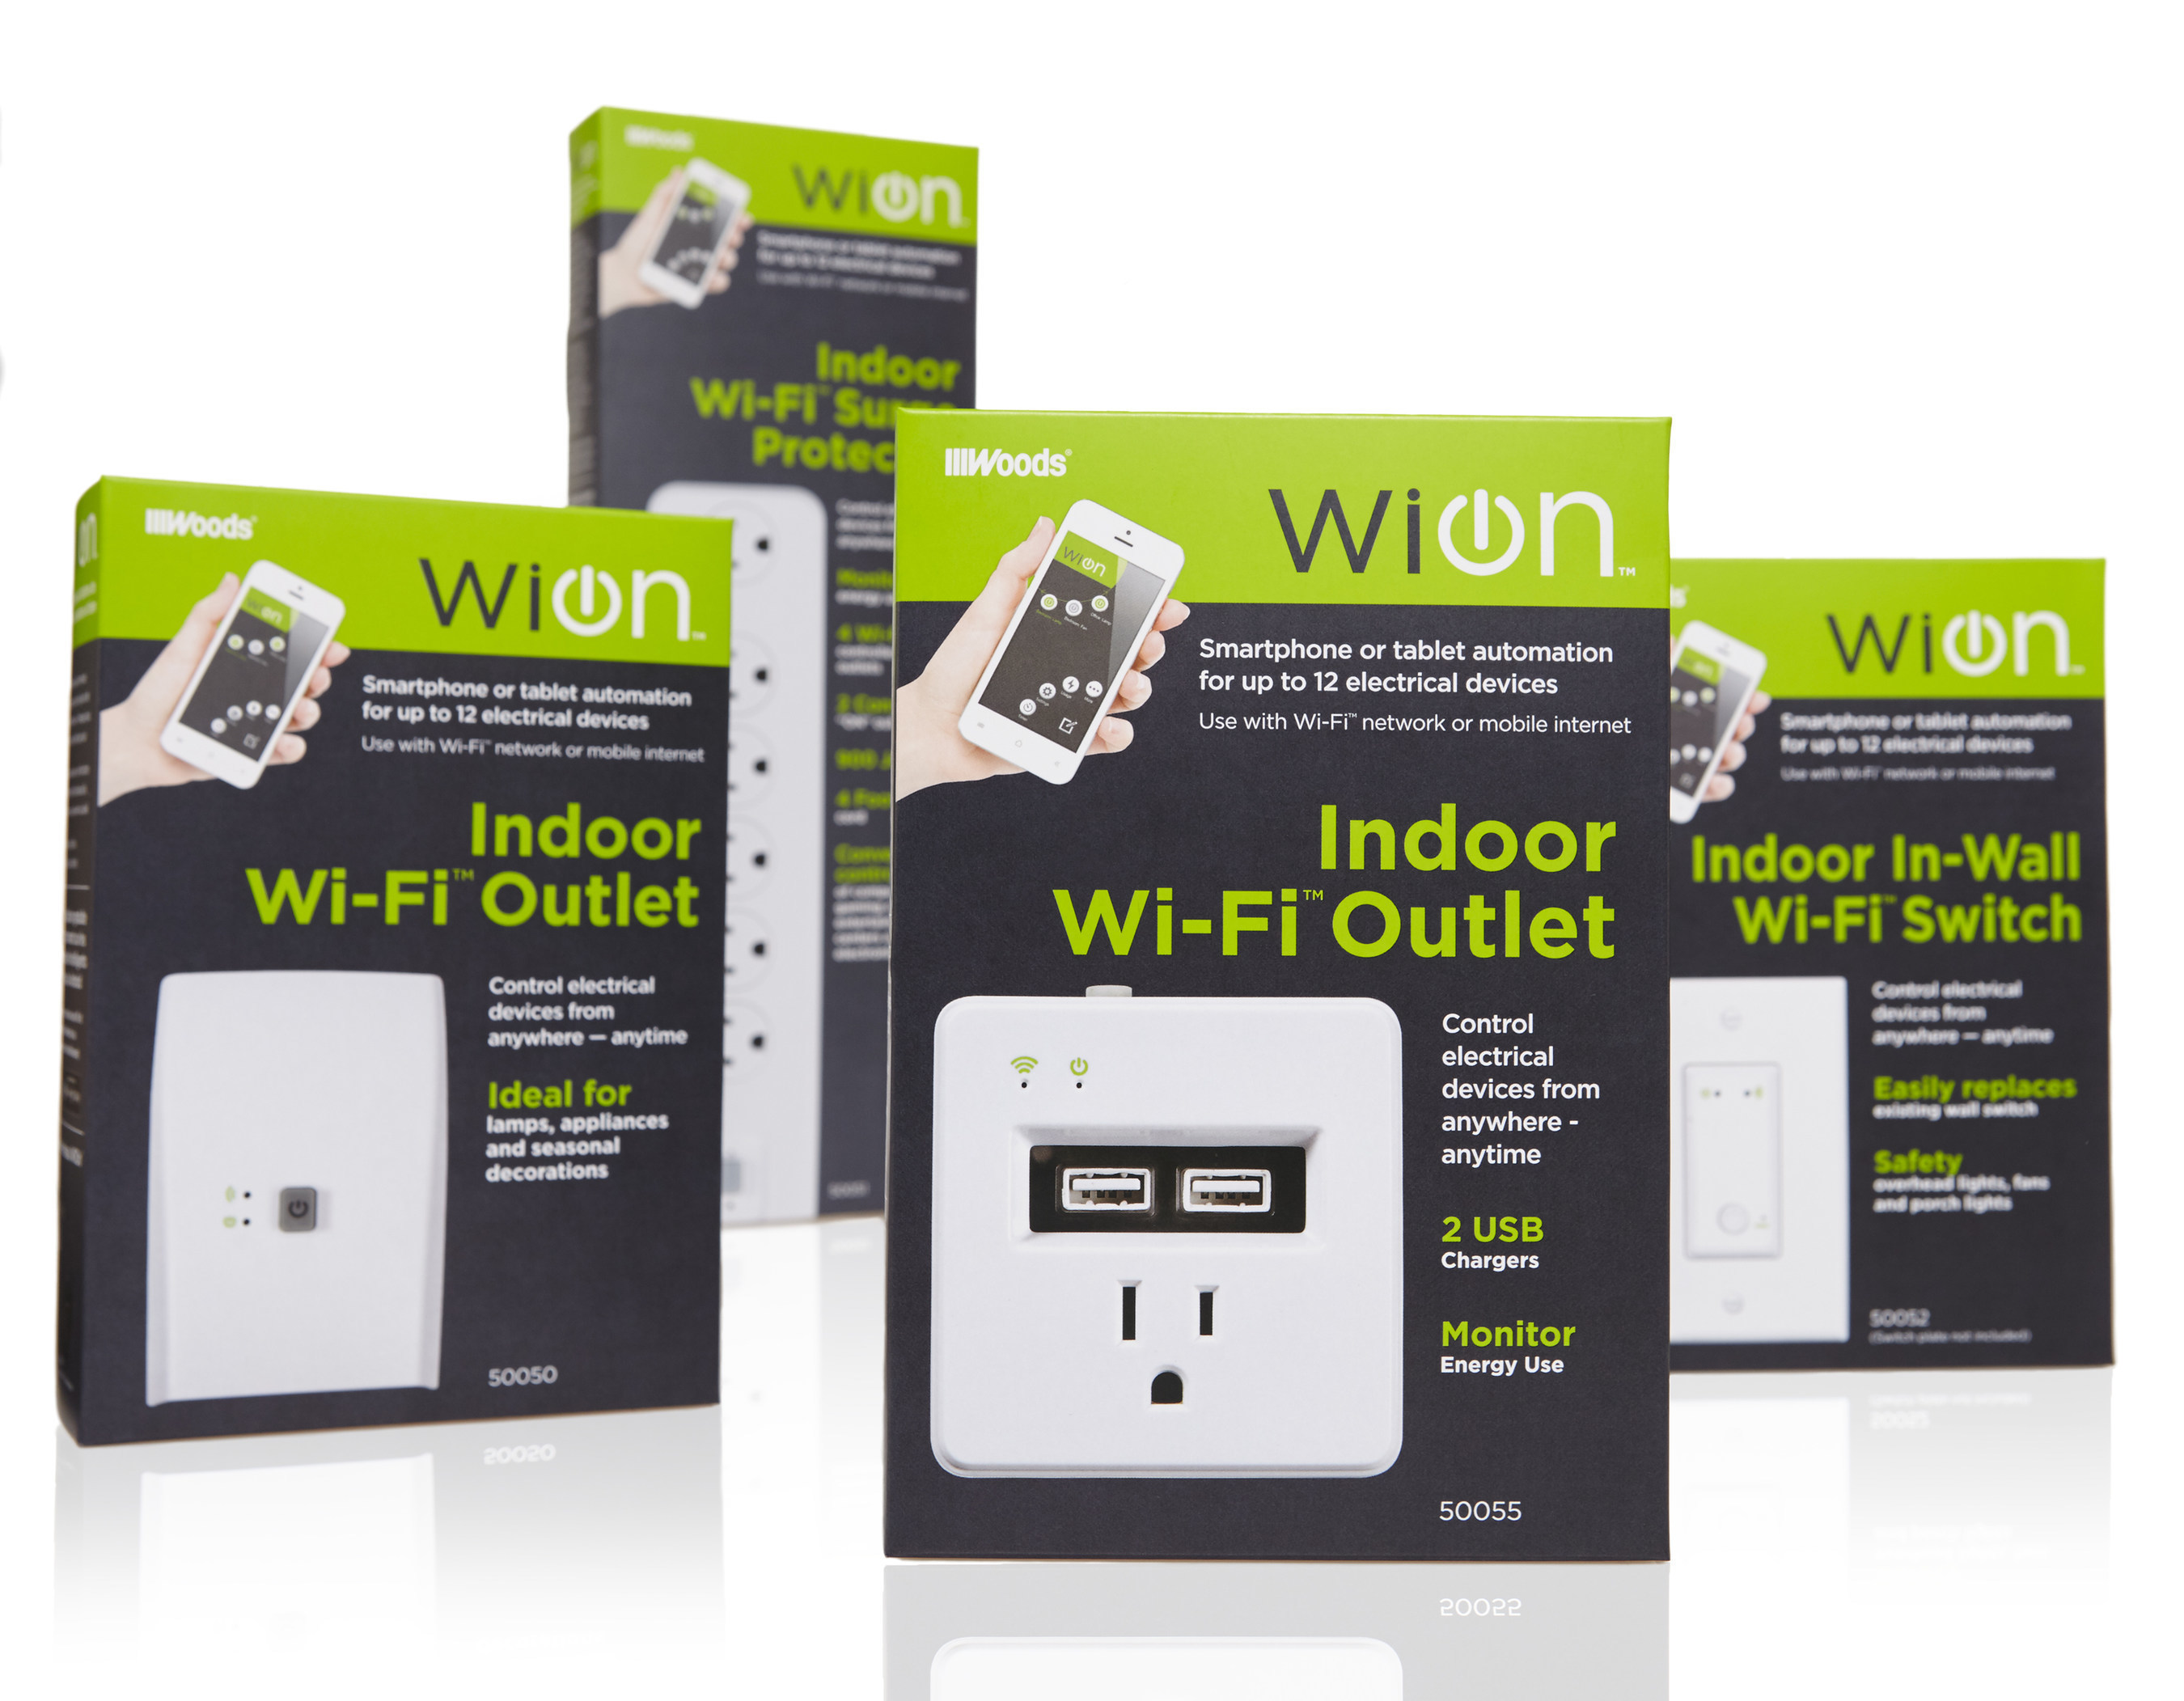 Woods Brand Products Releases WiOn Smart Switches, the New Wi-Fi ...